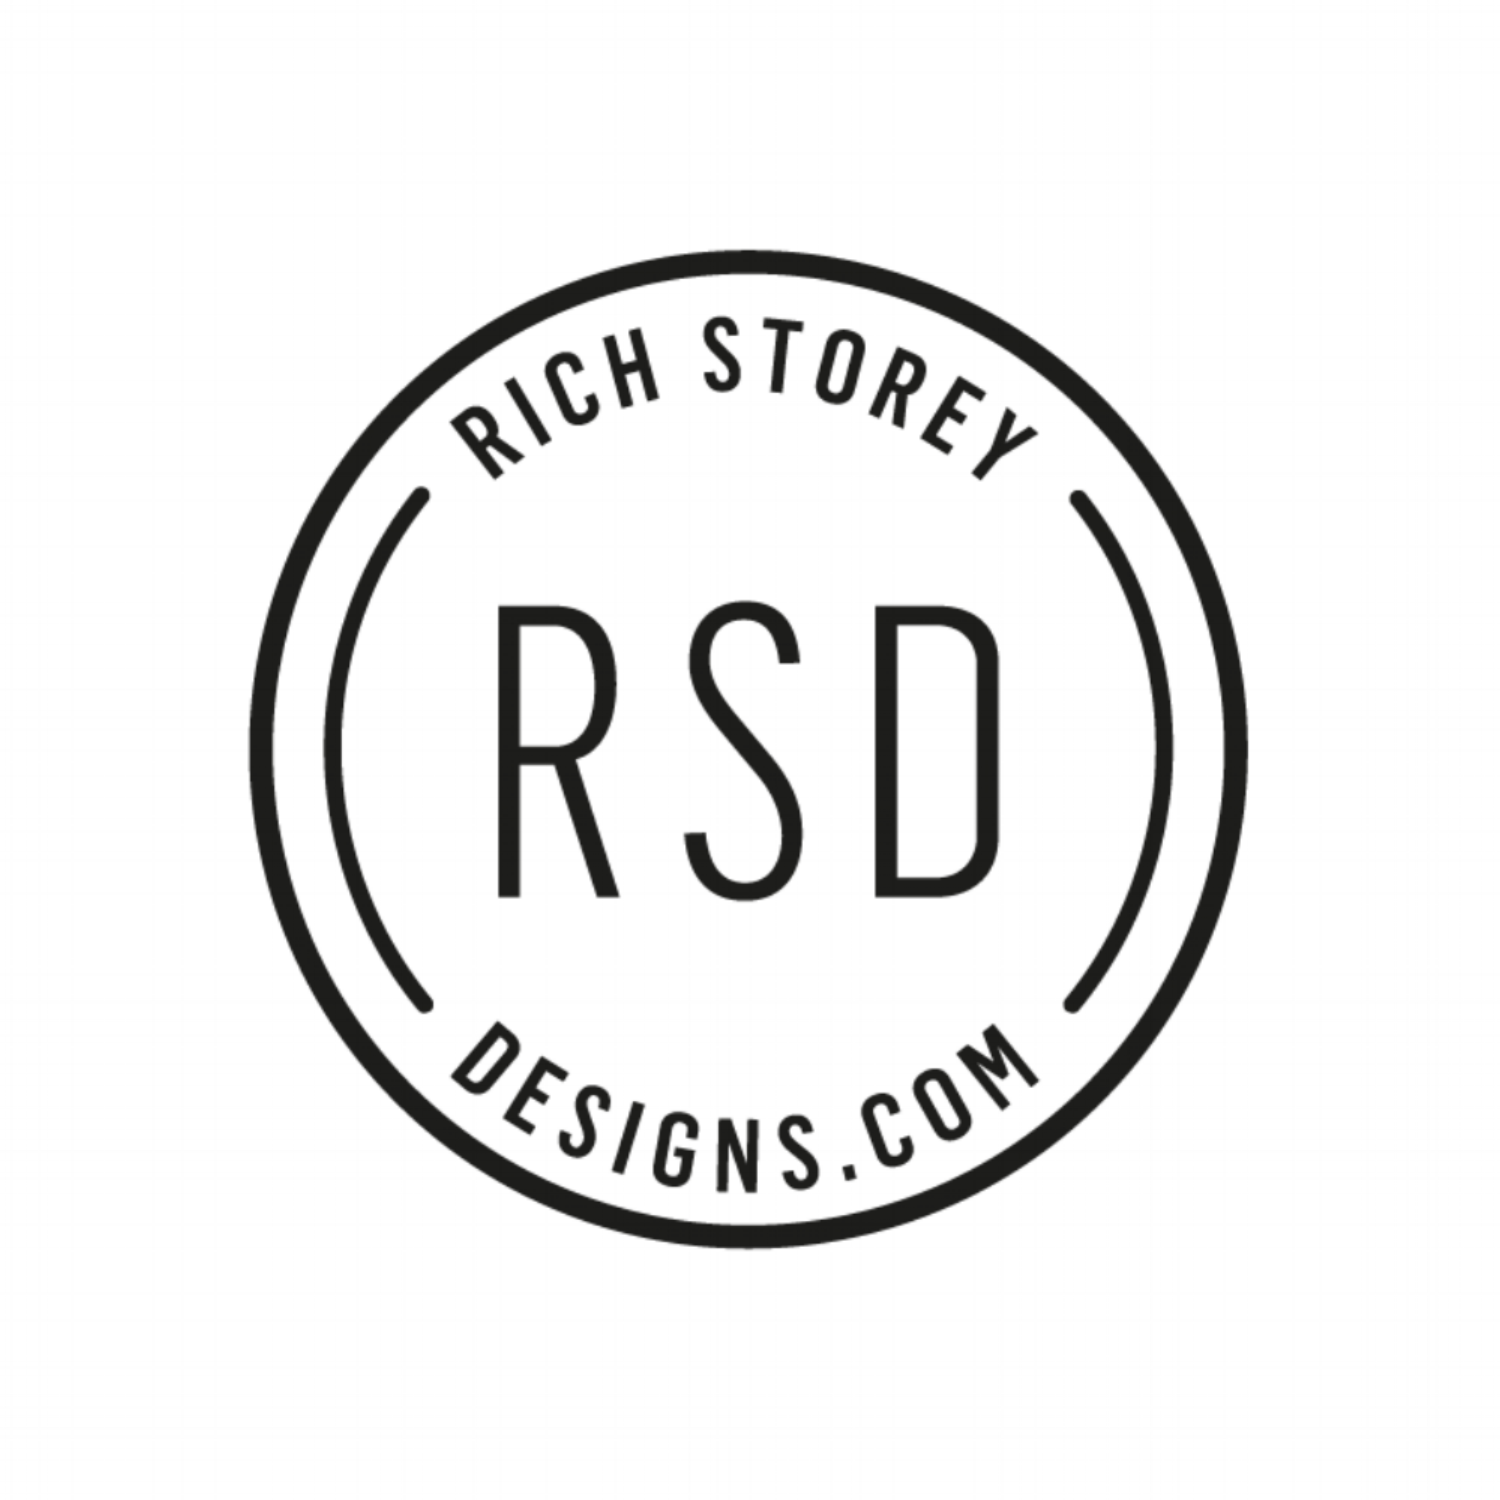 richstoreydesigns.com